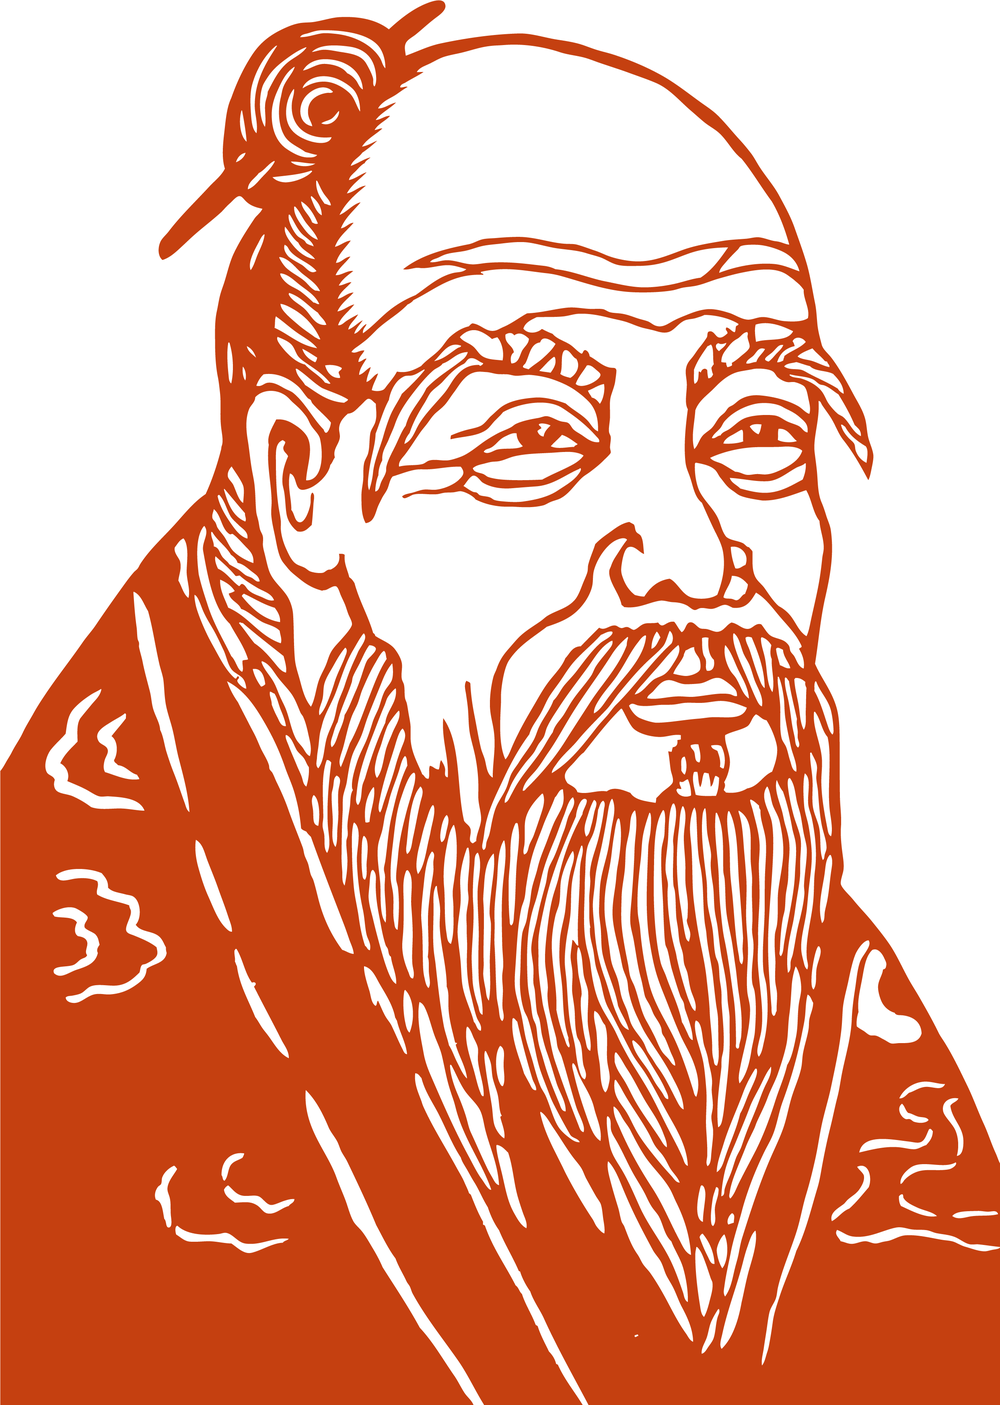 Laozi (Lao-Tzu) - ancient Chinese philosopher (circa 400 - 600 BCE) and author of Dao De Jing (Tao Te Ching)